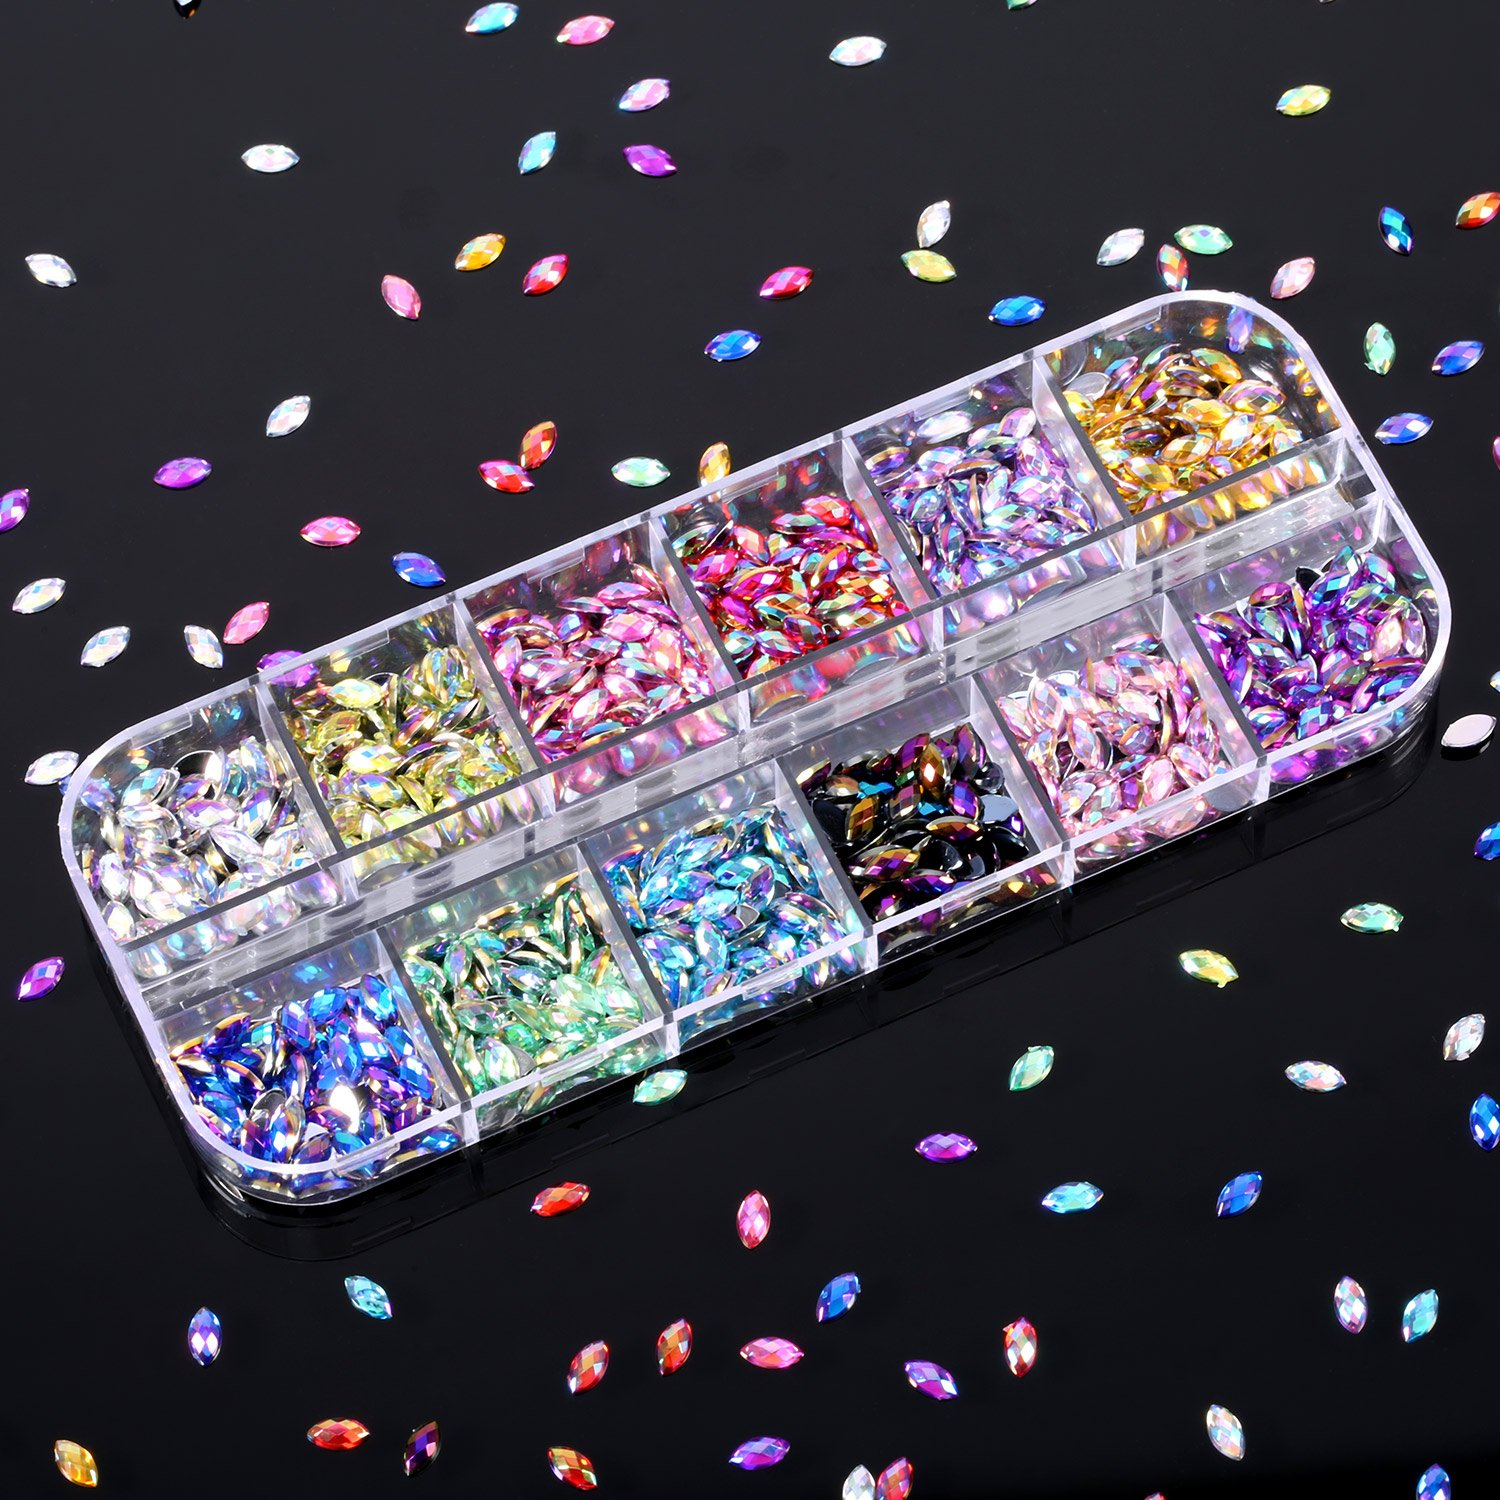 Bememo 4300 Pieces (4 Boxes) Nail Art Rhinestones Kit Nail Rhinestones with 1 Piece 1 Pick up Tweezers, Multicolor Nail Studs Horse Eye Rhinestones for Nail Art Decorations Supplies by Bememo (Image #3)